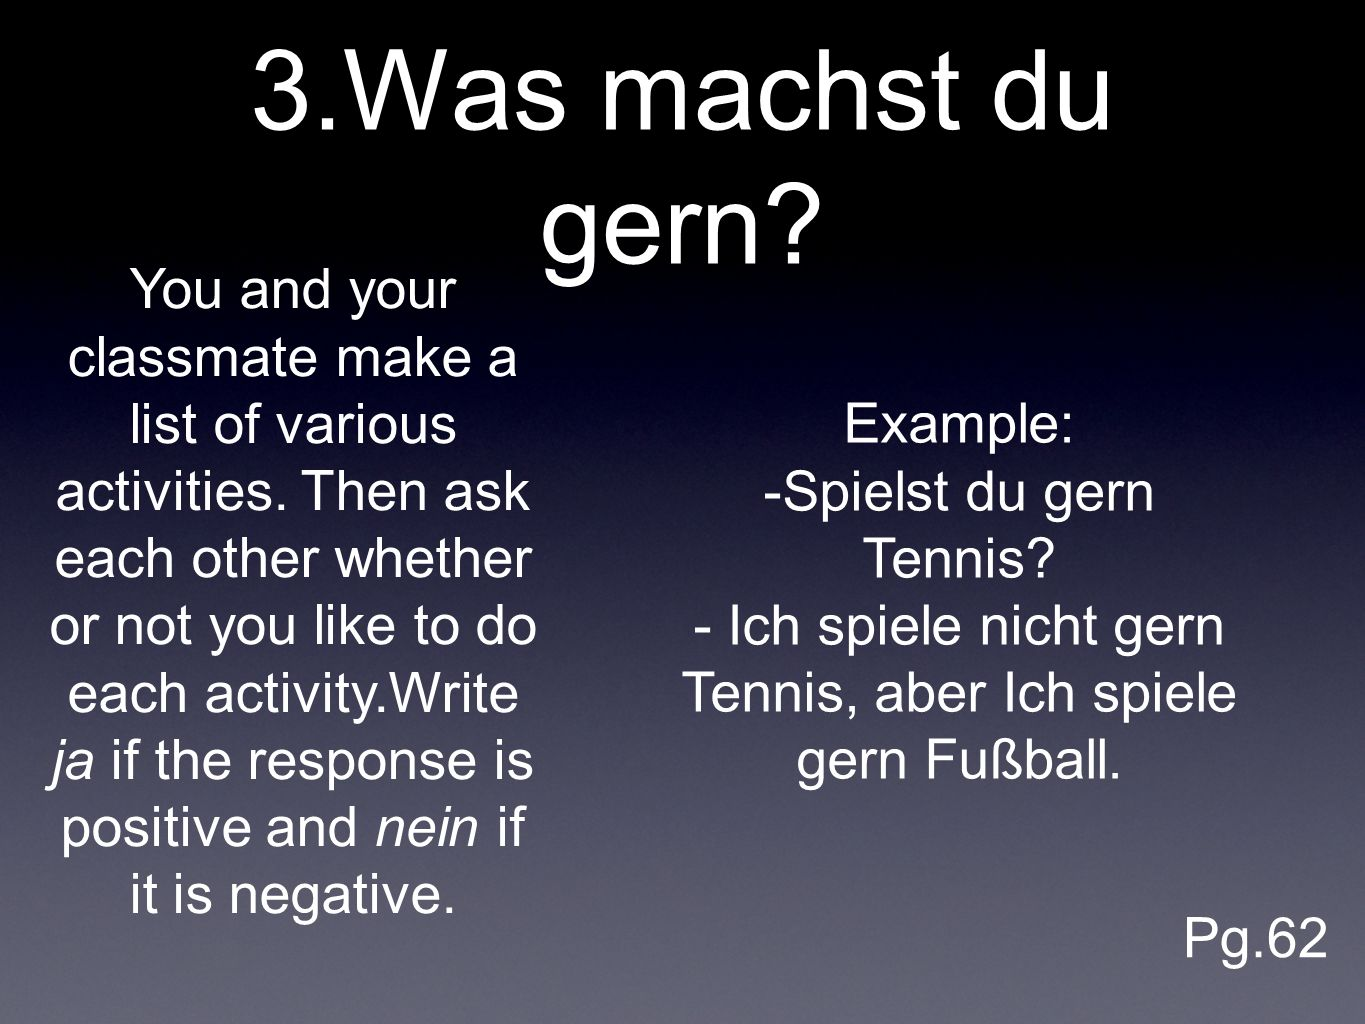 3.Was machst du gern? You and your classmate make a list of various activities. Then ask each other whether or not you like to do each activity.Write